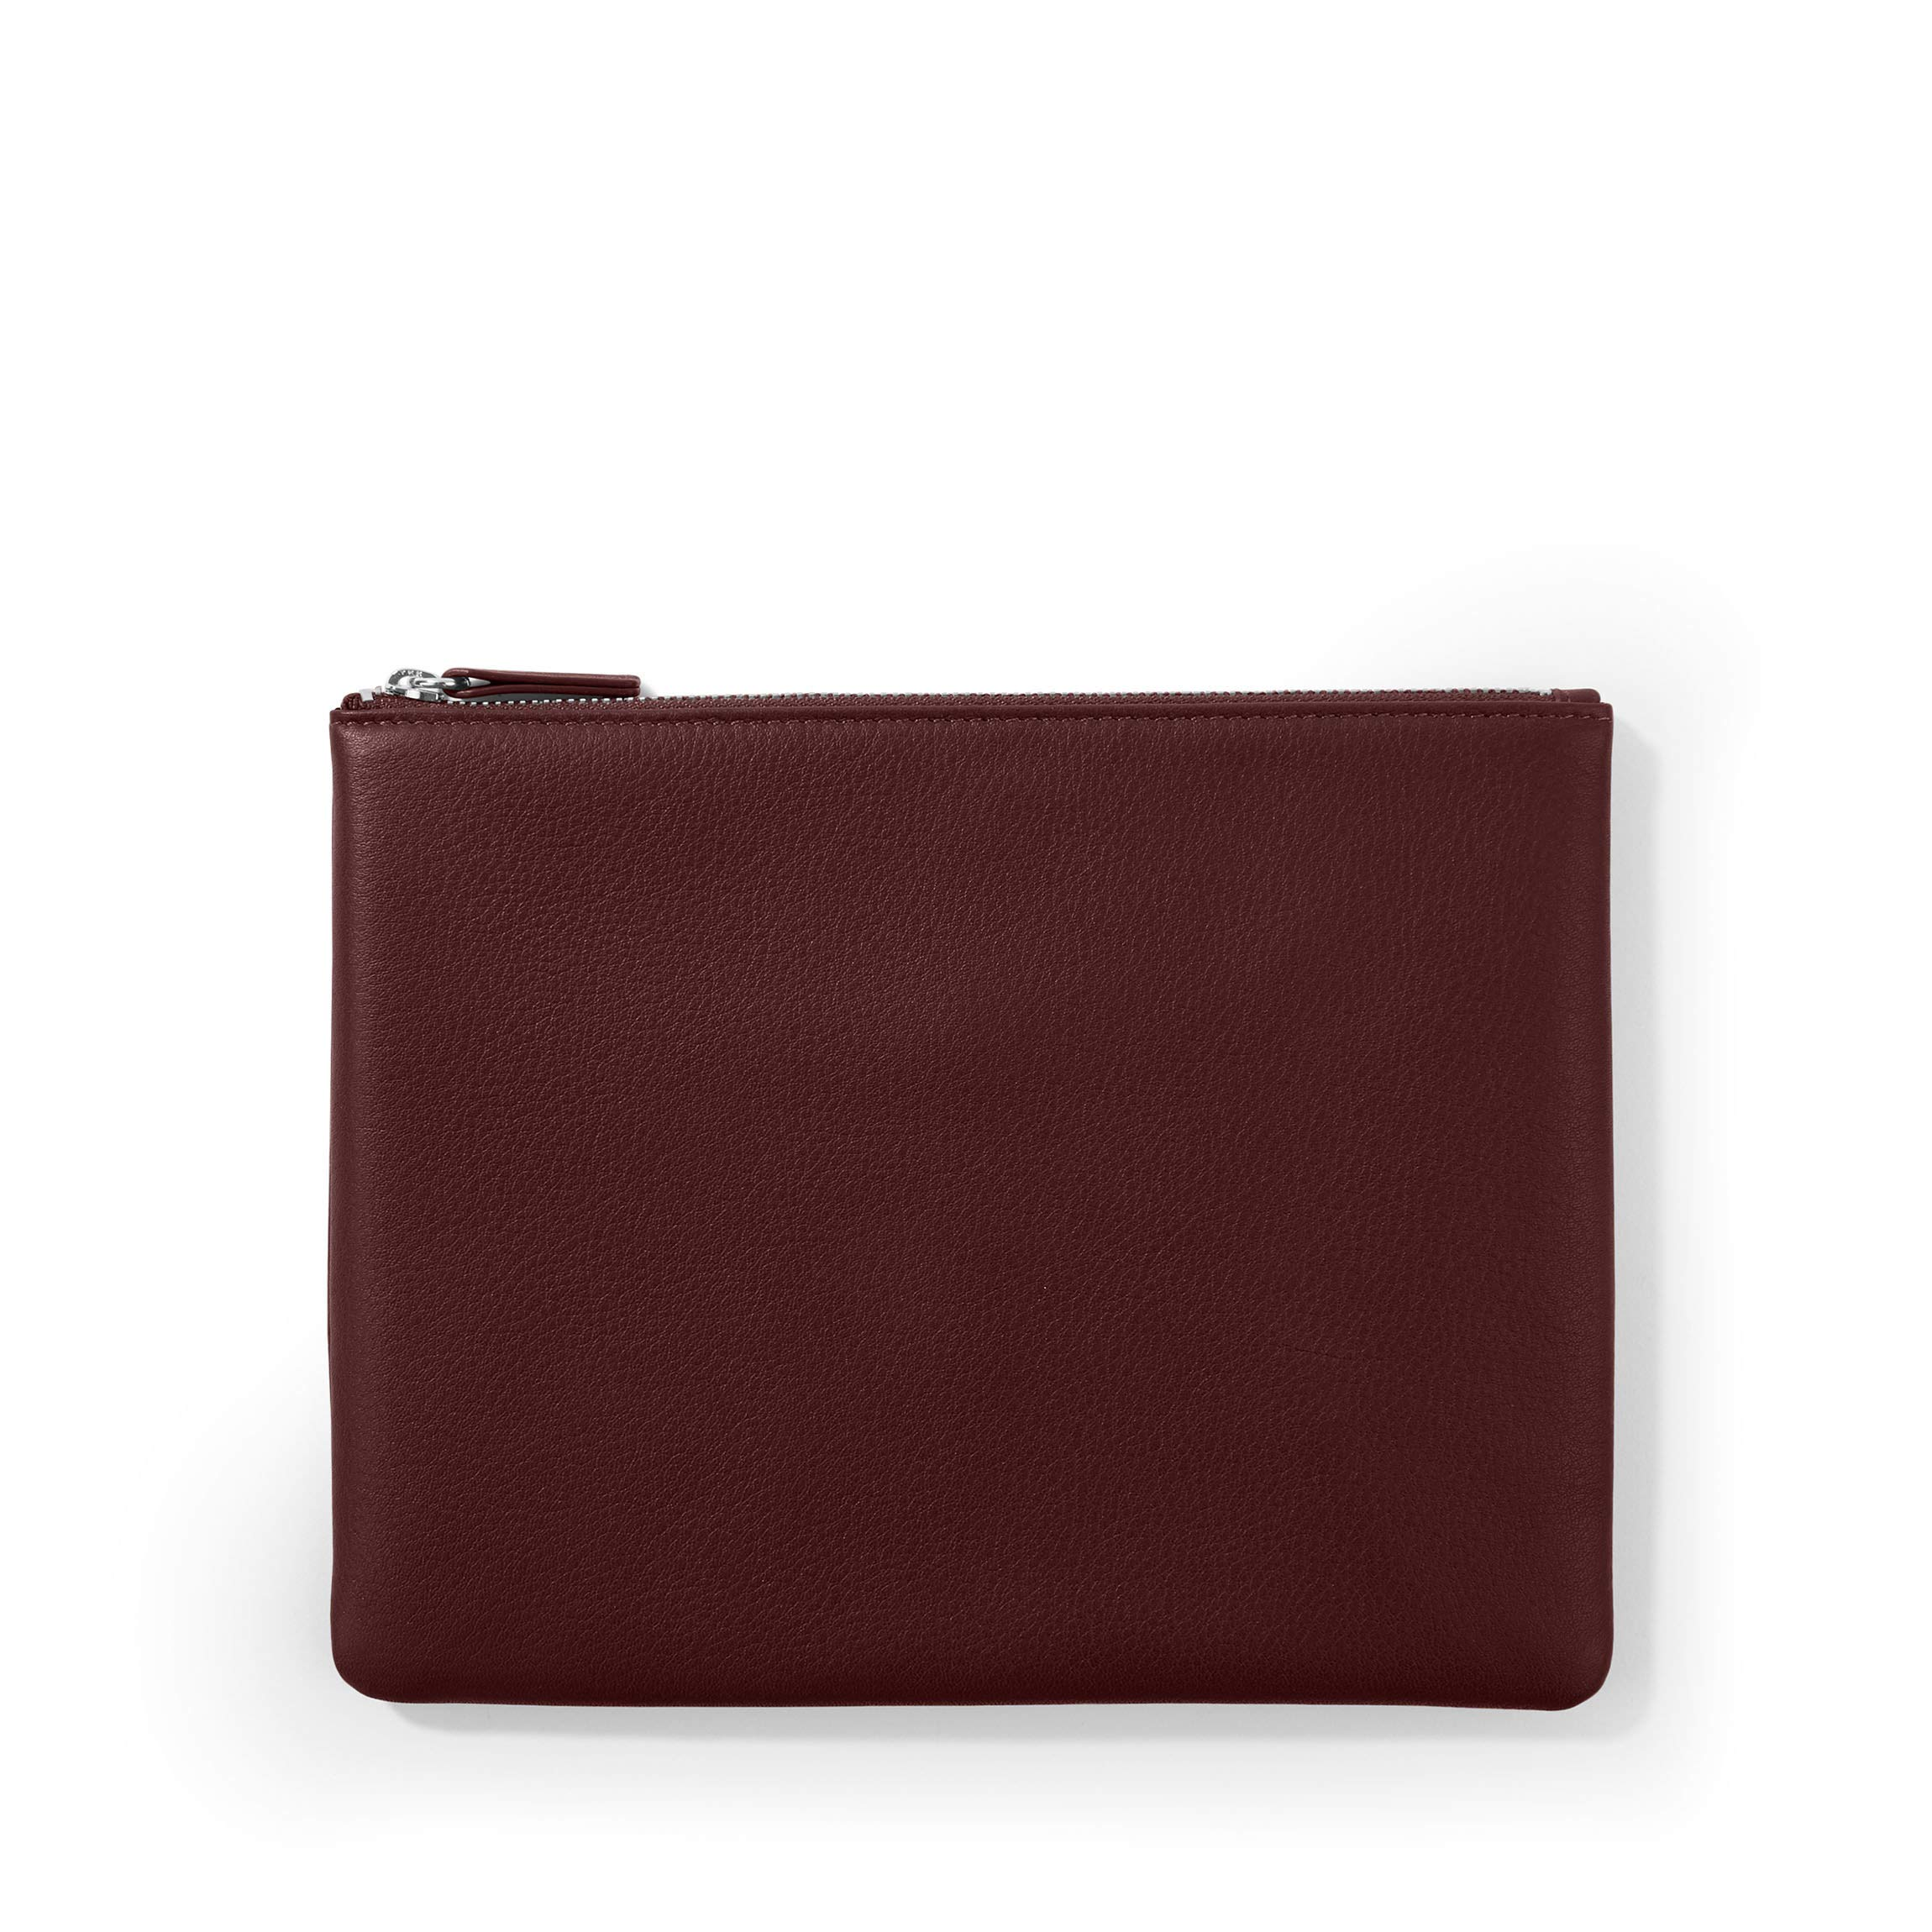 Medium Pouch - Full Grain Leather Leather - Bordeaux (Red)